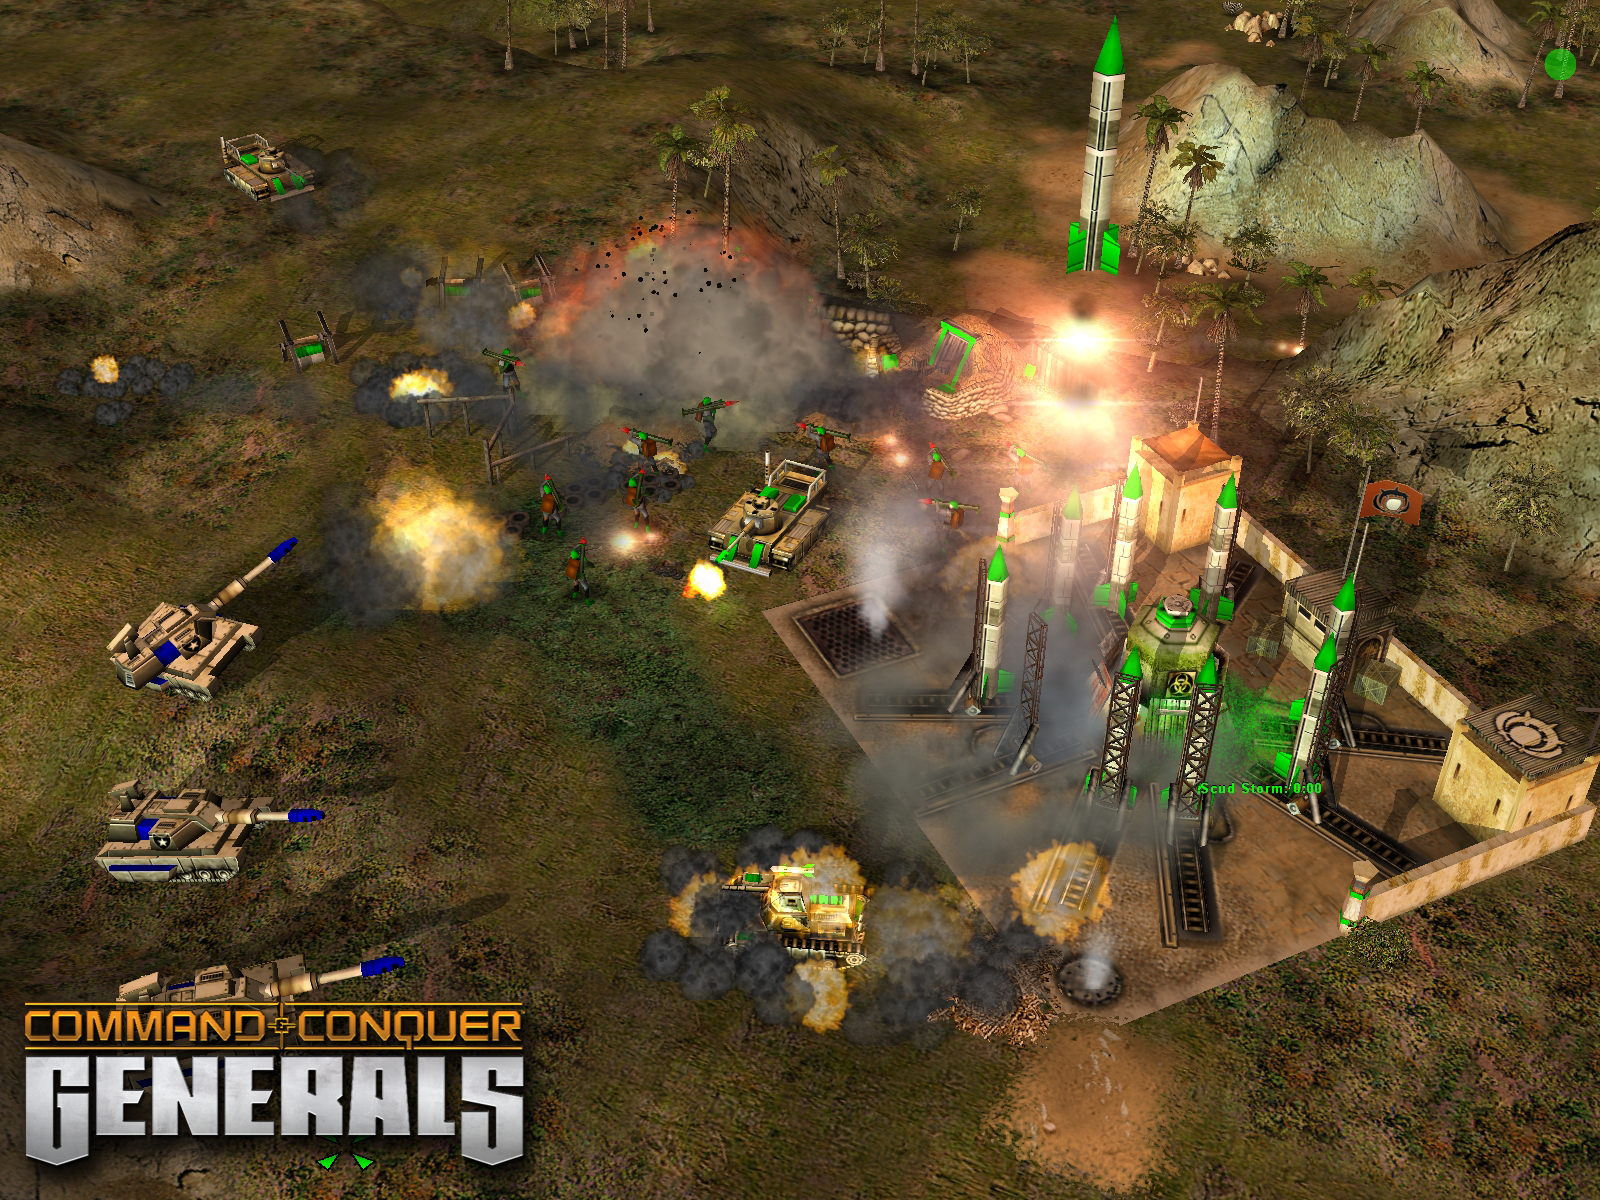 command and conquer generals 2 download password archive